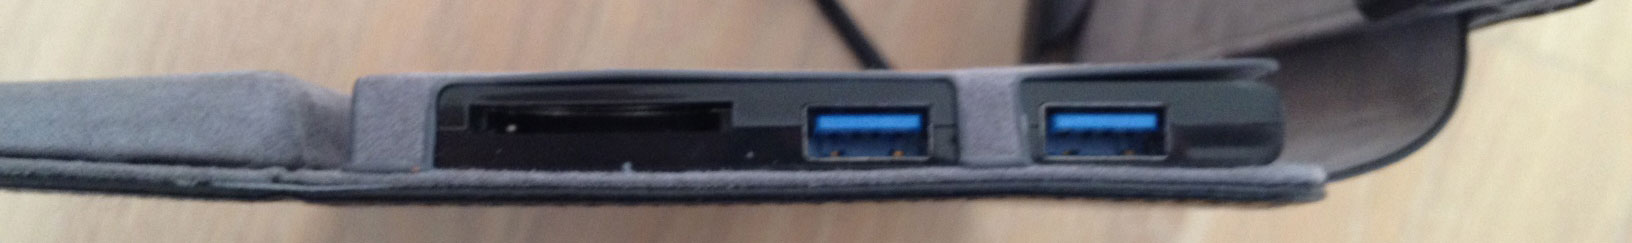 An SD card reader (left) and two USB 3.0 ports sit on the right side of the dock cover.